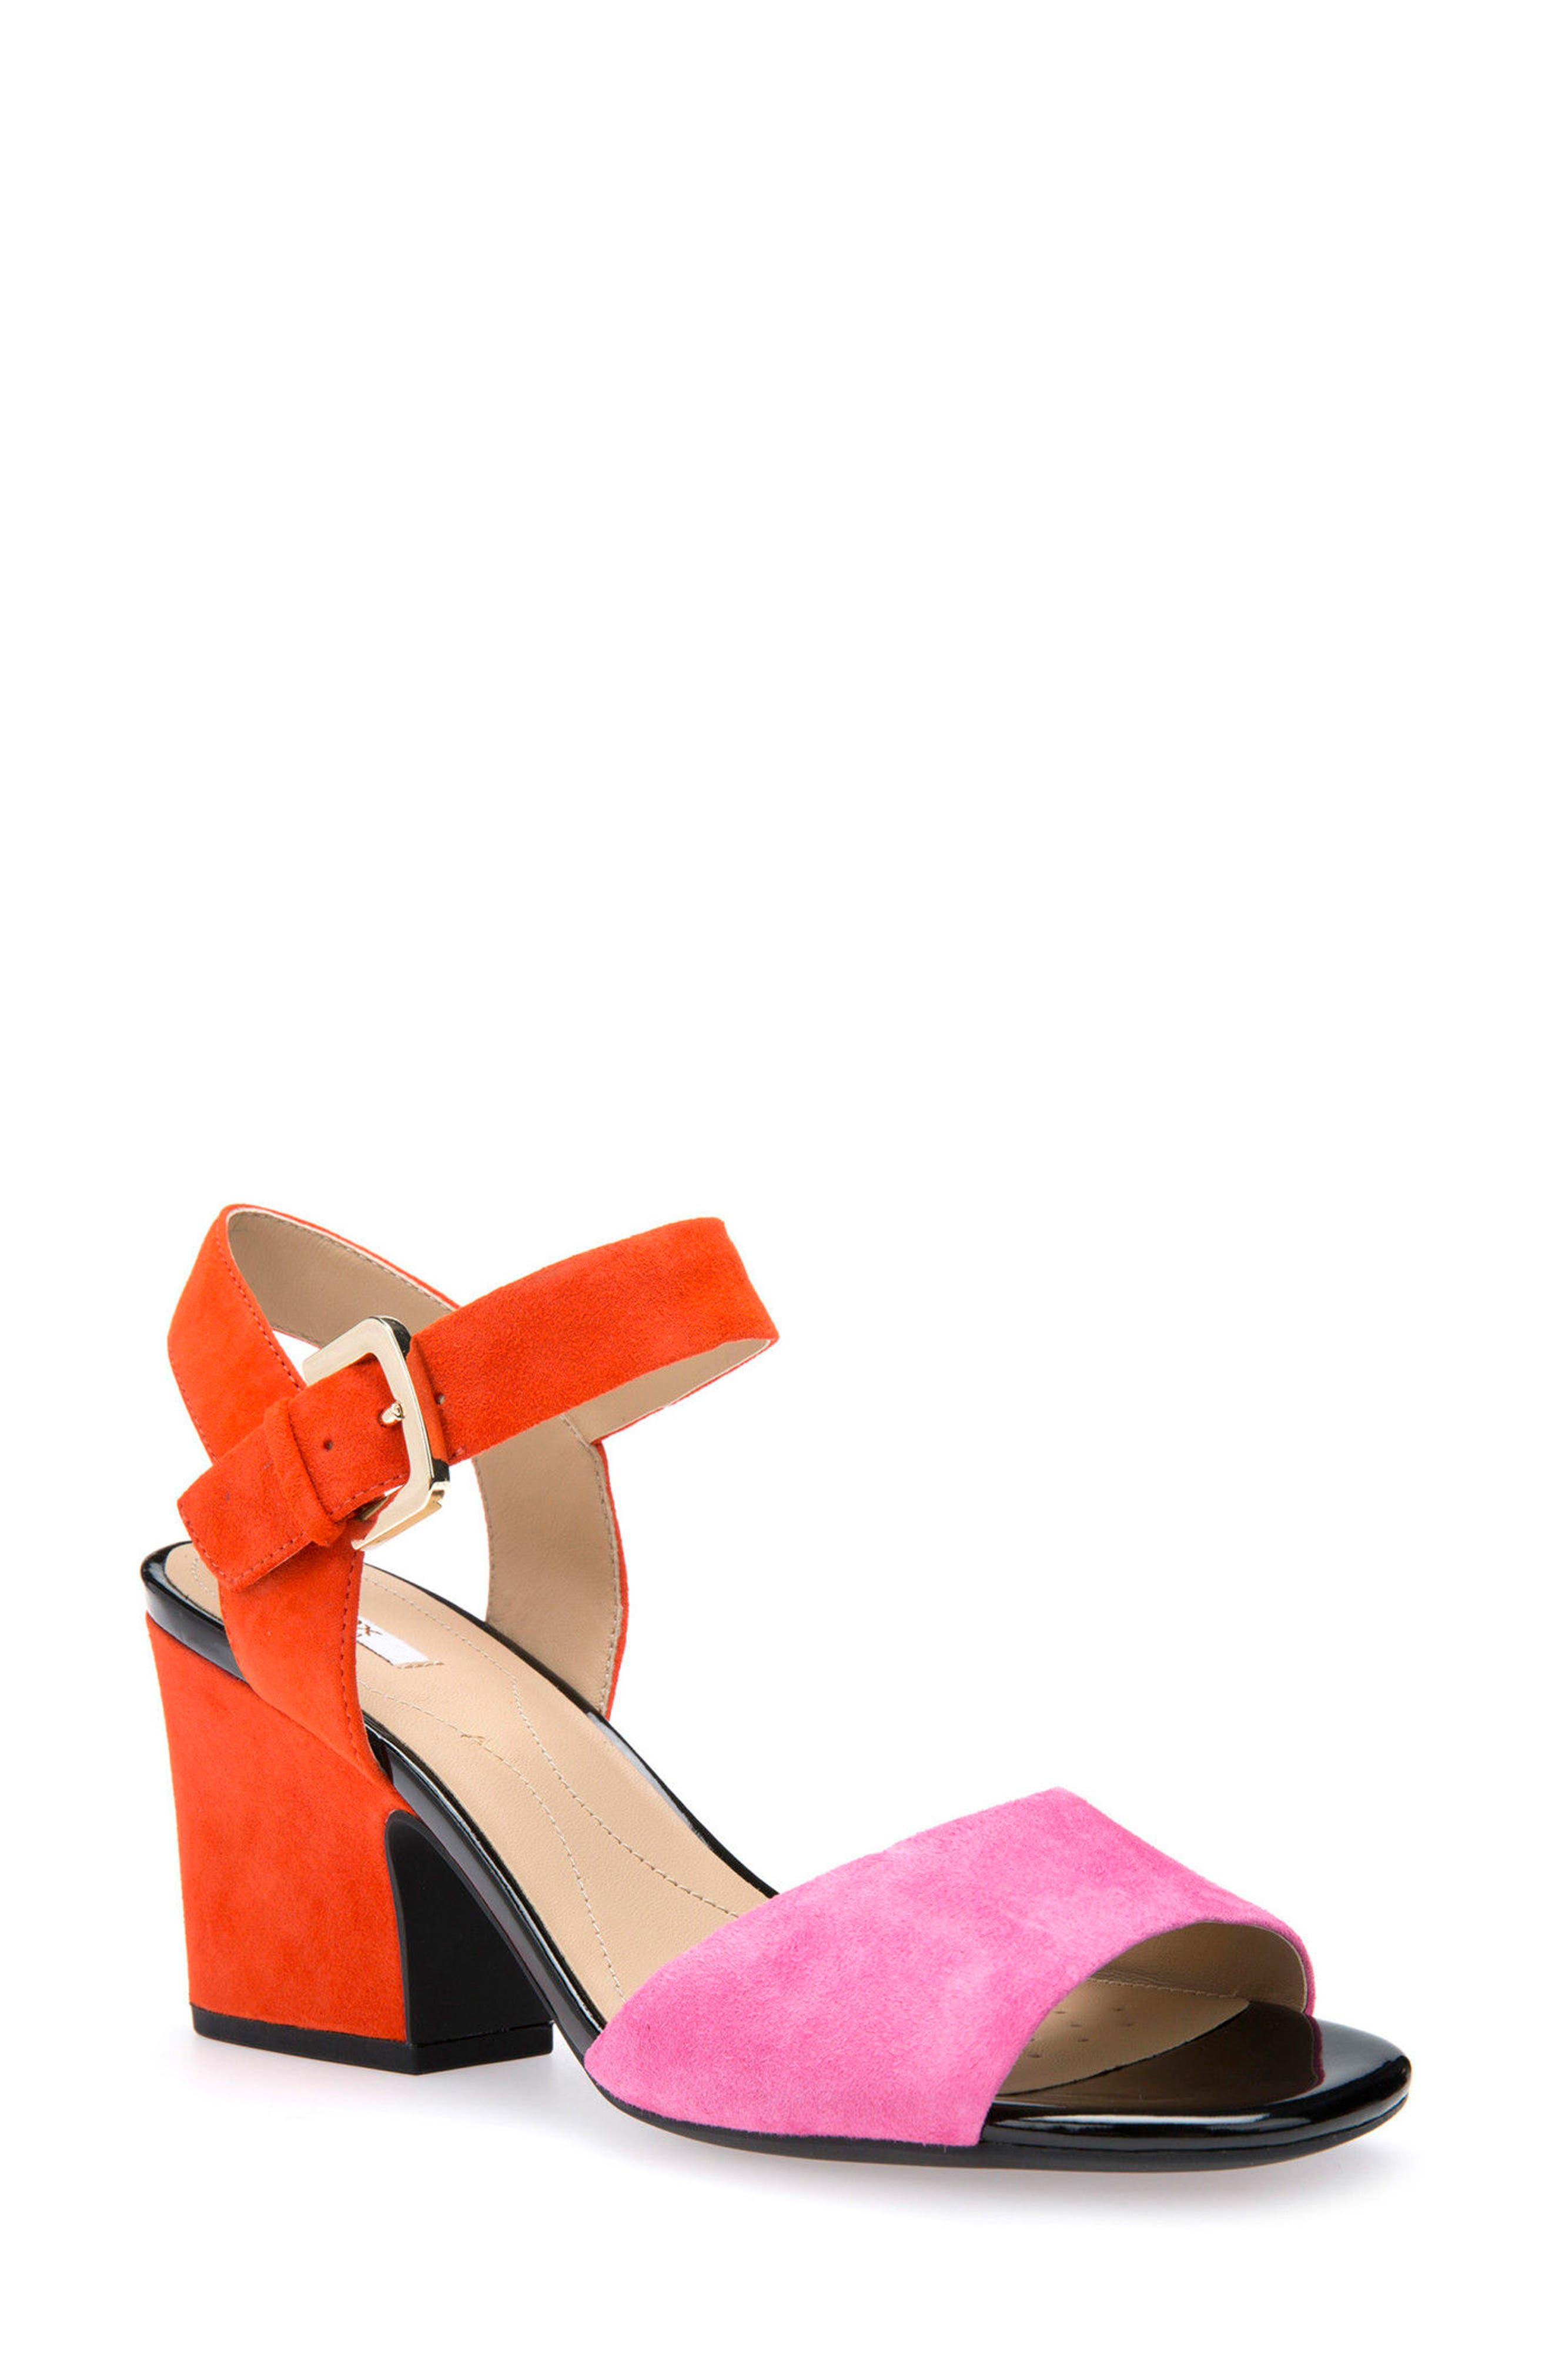 Alternate Image 1 Selected - Geox Marilyse Ankle Strap Sandal (Women)